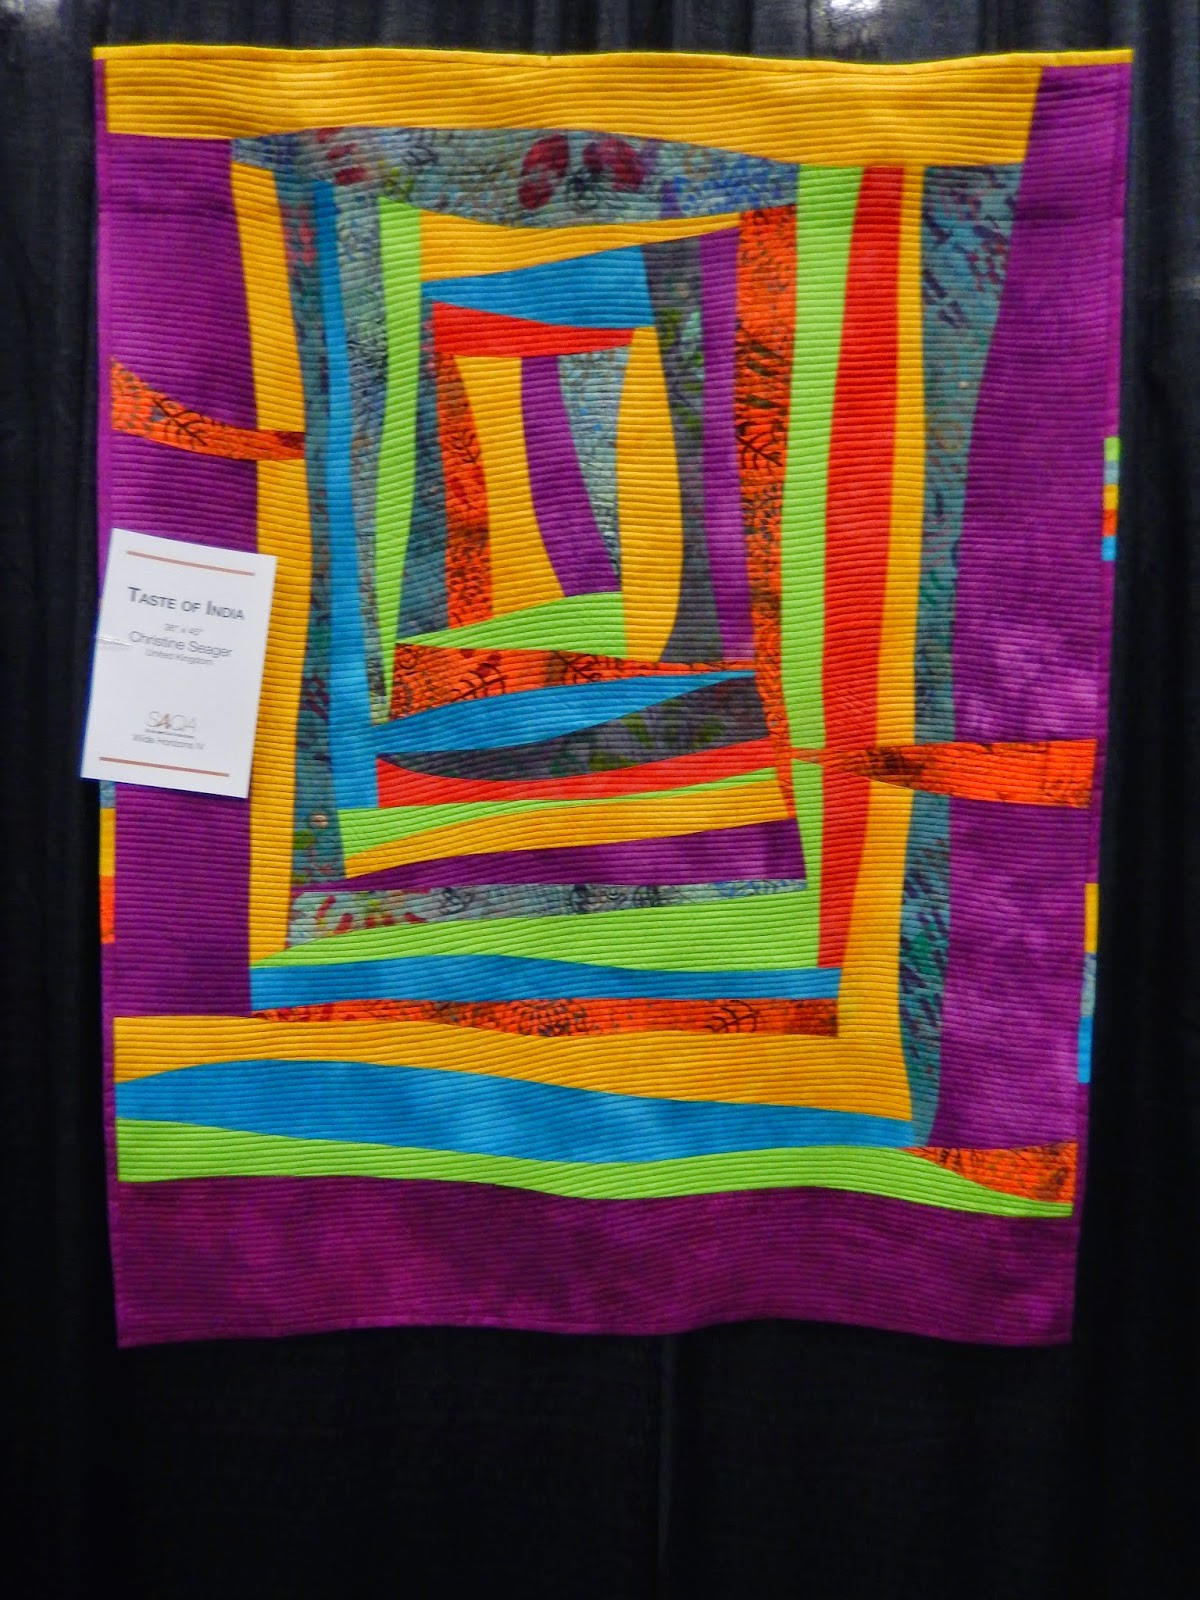 Taste of India by Christine Seager @ Quilting Mod